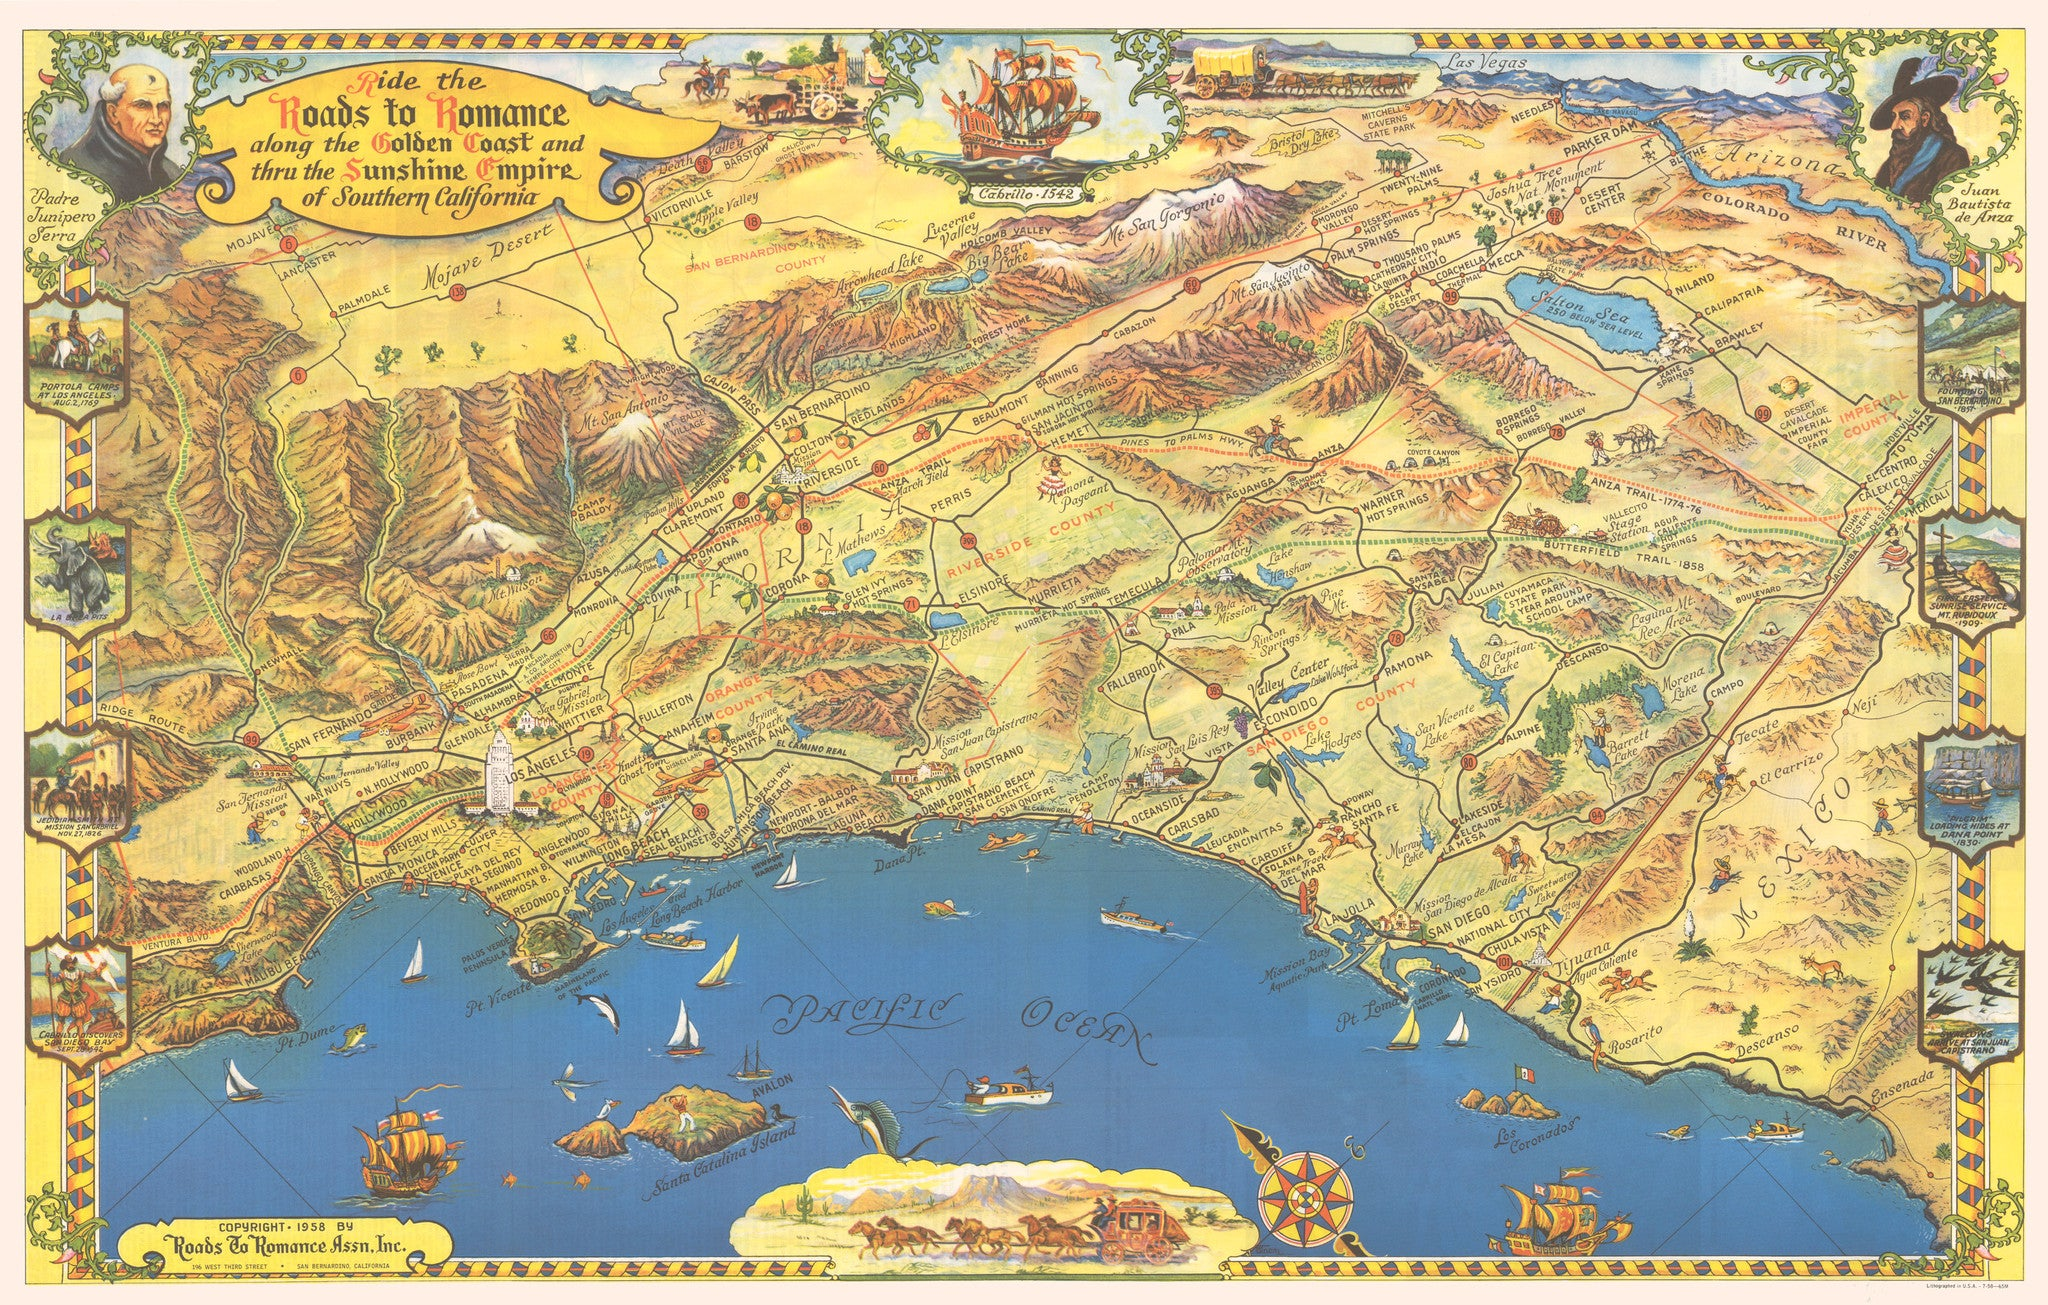 Ride the Roads to Romance along the Golden Coast and thru the Sunshine Empire... Date: 1958 - Bird's Eye View / Pictorial Map of Southern California